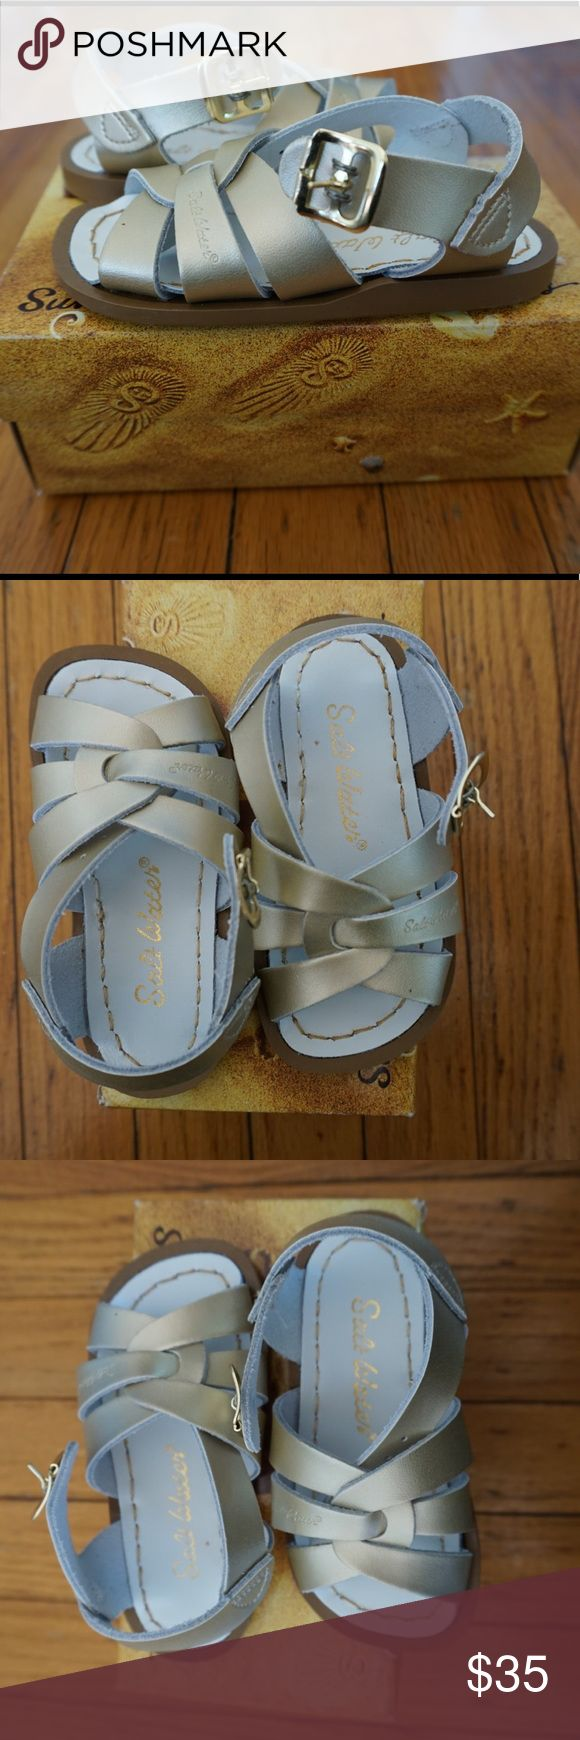 BNIB/NWT Gold Salt Water Sandals. Sz 6 Toddler Brand new in box, never worn, gold sandal, ships in box, perfect for every warm weather outfit! Salt Water Sandals by Hoy Shoes Sandals & Flip Flops